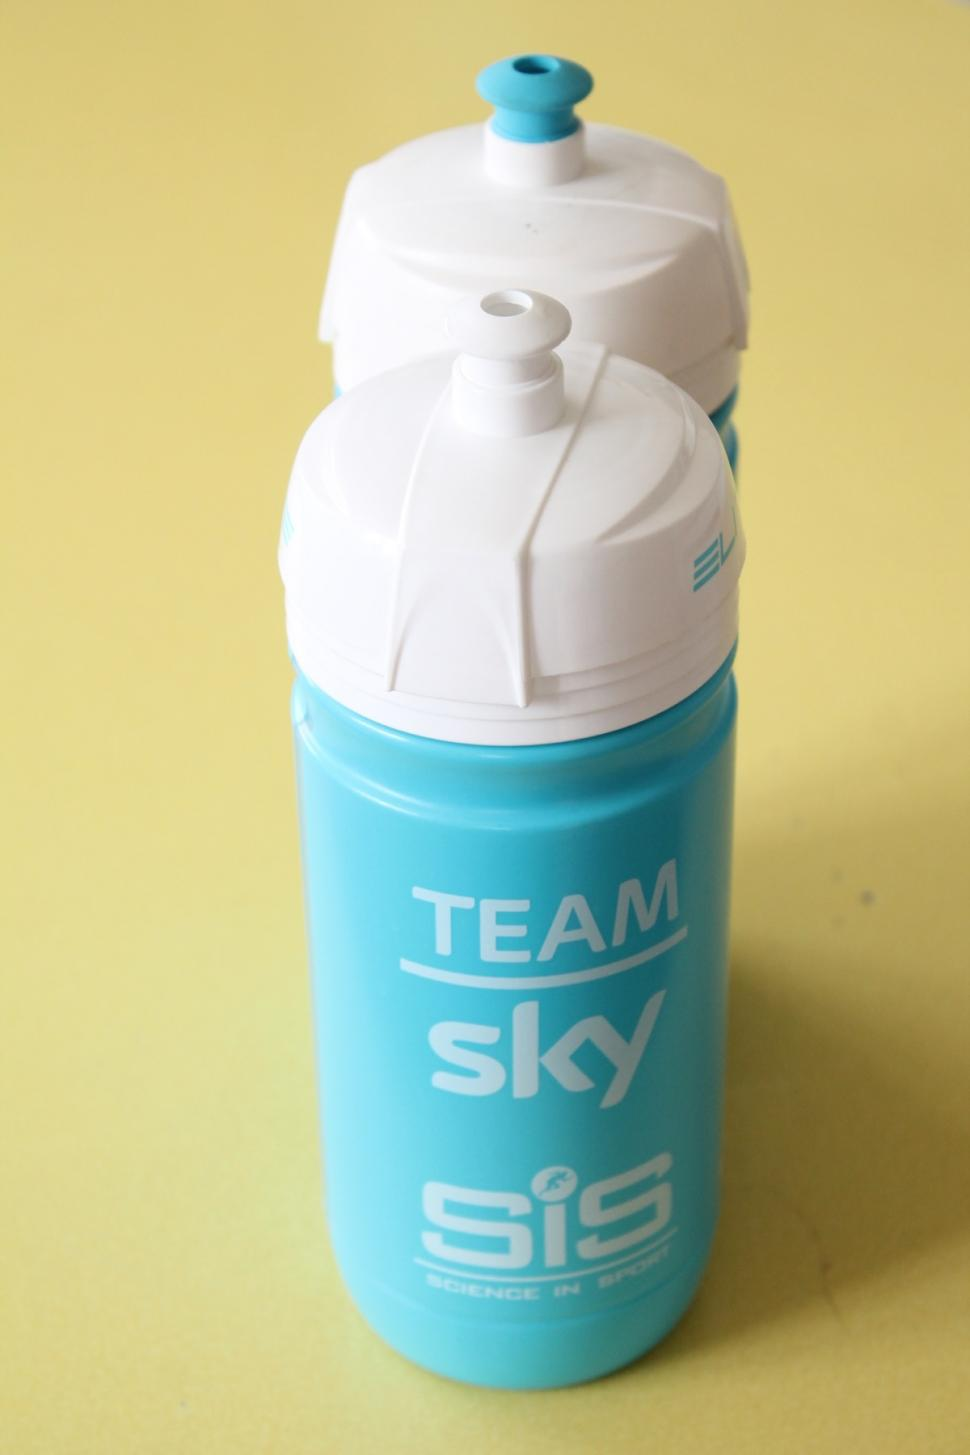 Team sky uses up to 35 000 drinks bottles per year